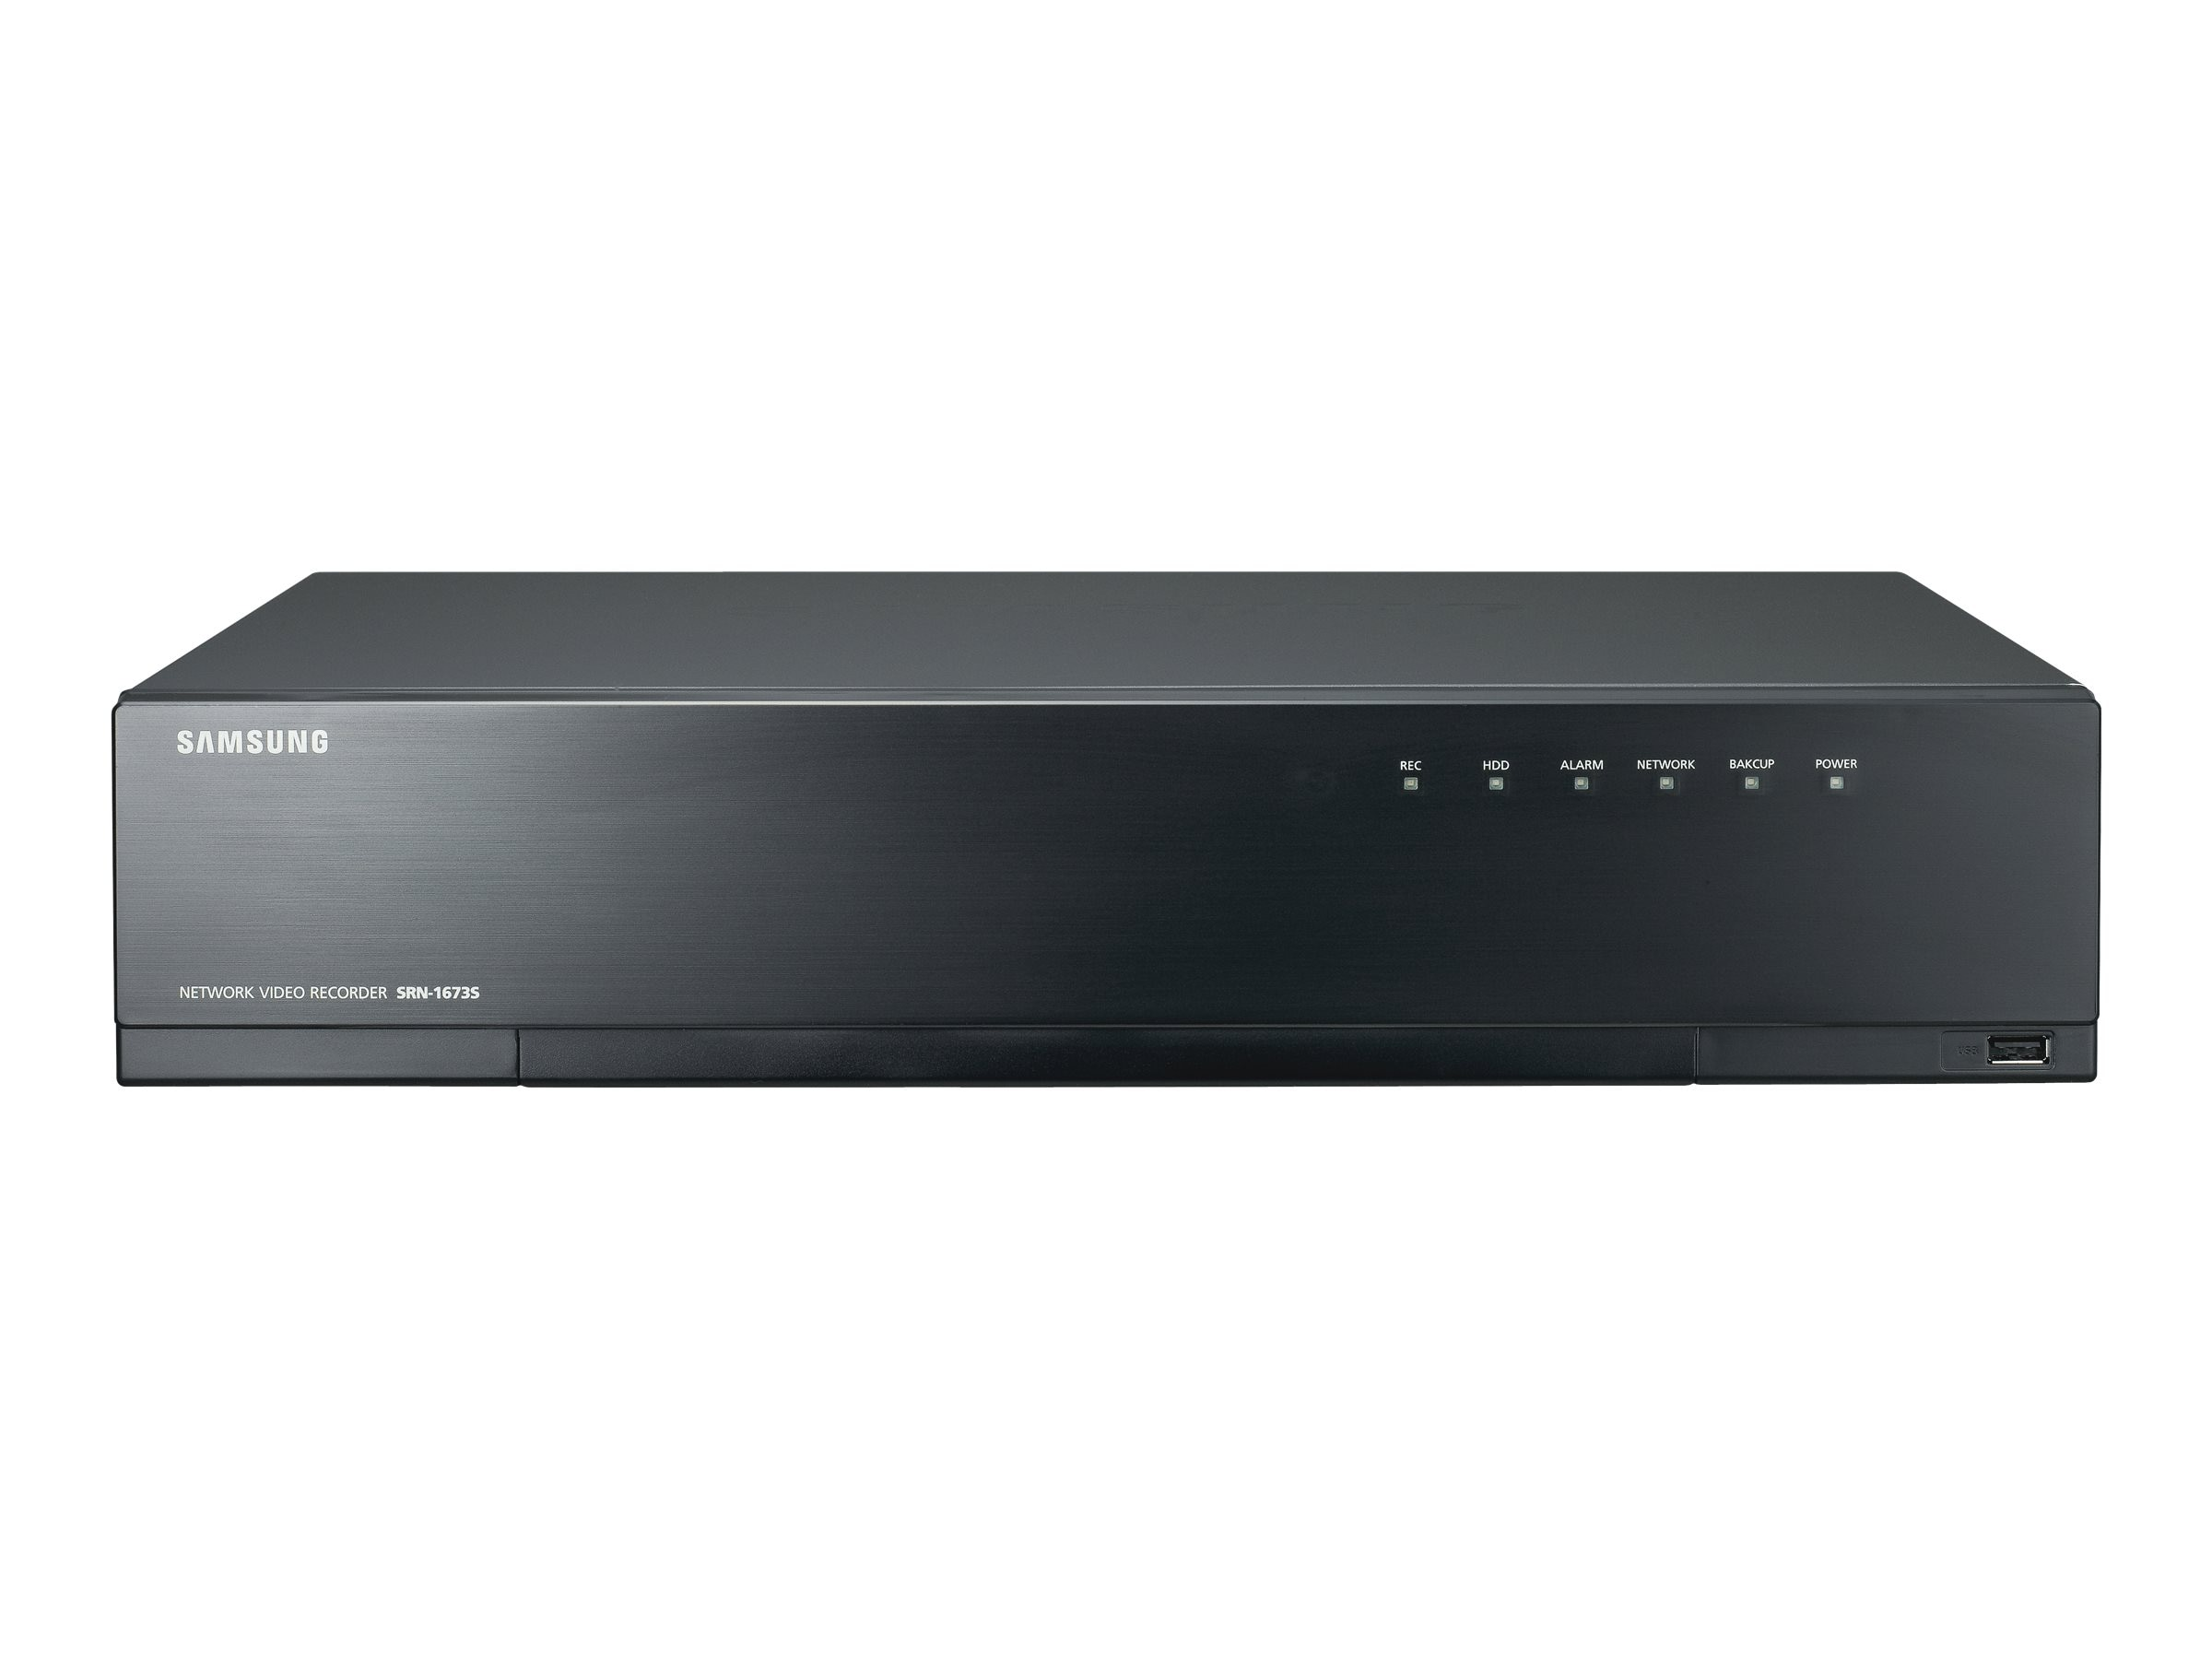 Samsung 16CH NVR with PoE Switch, 1TB HDD, SRN-1673S-1TB